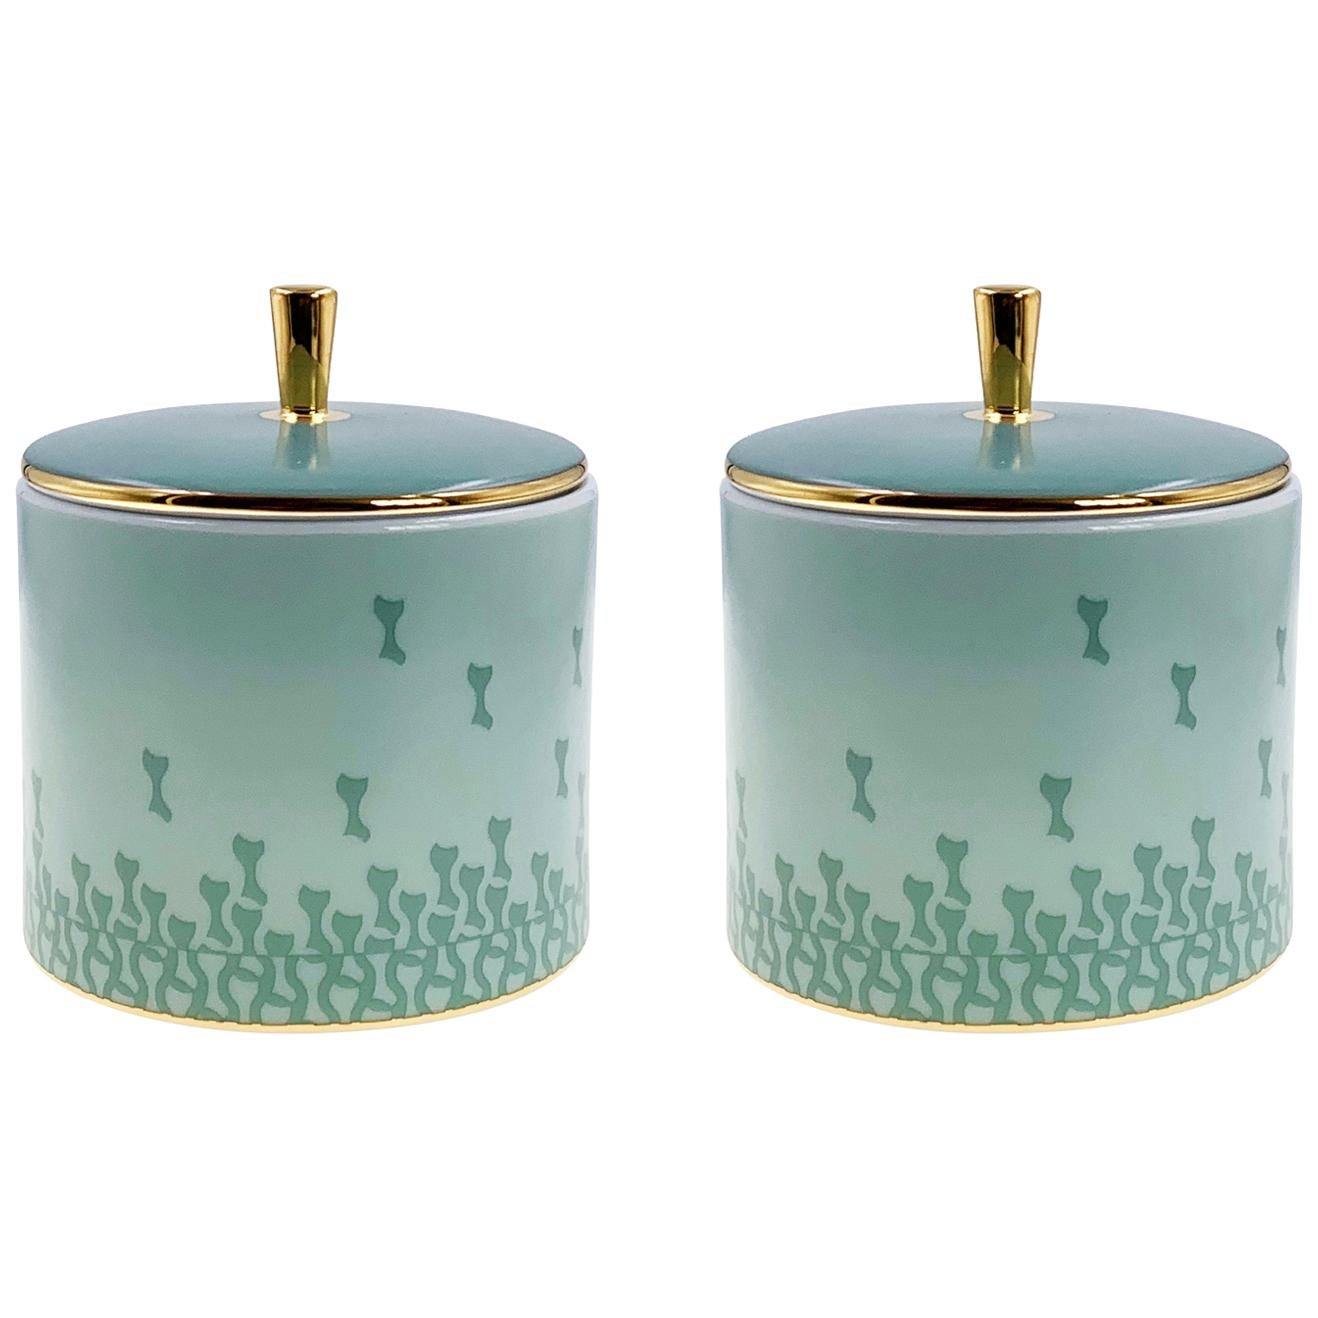 Set of 2 Cylindrical Box With Lid Mid Century Rhythm André Fu Living Tableware